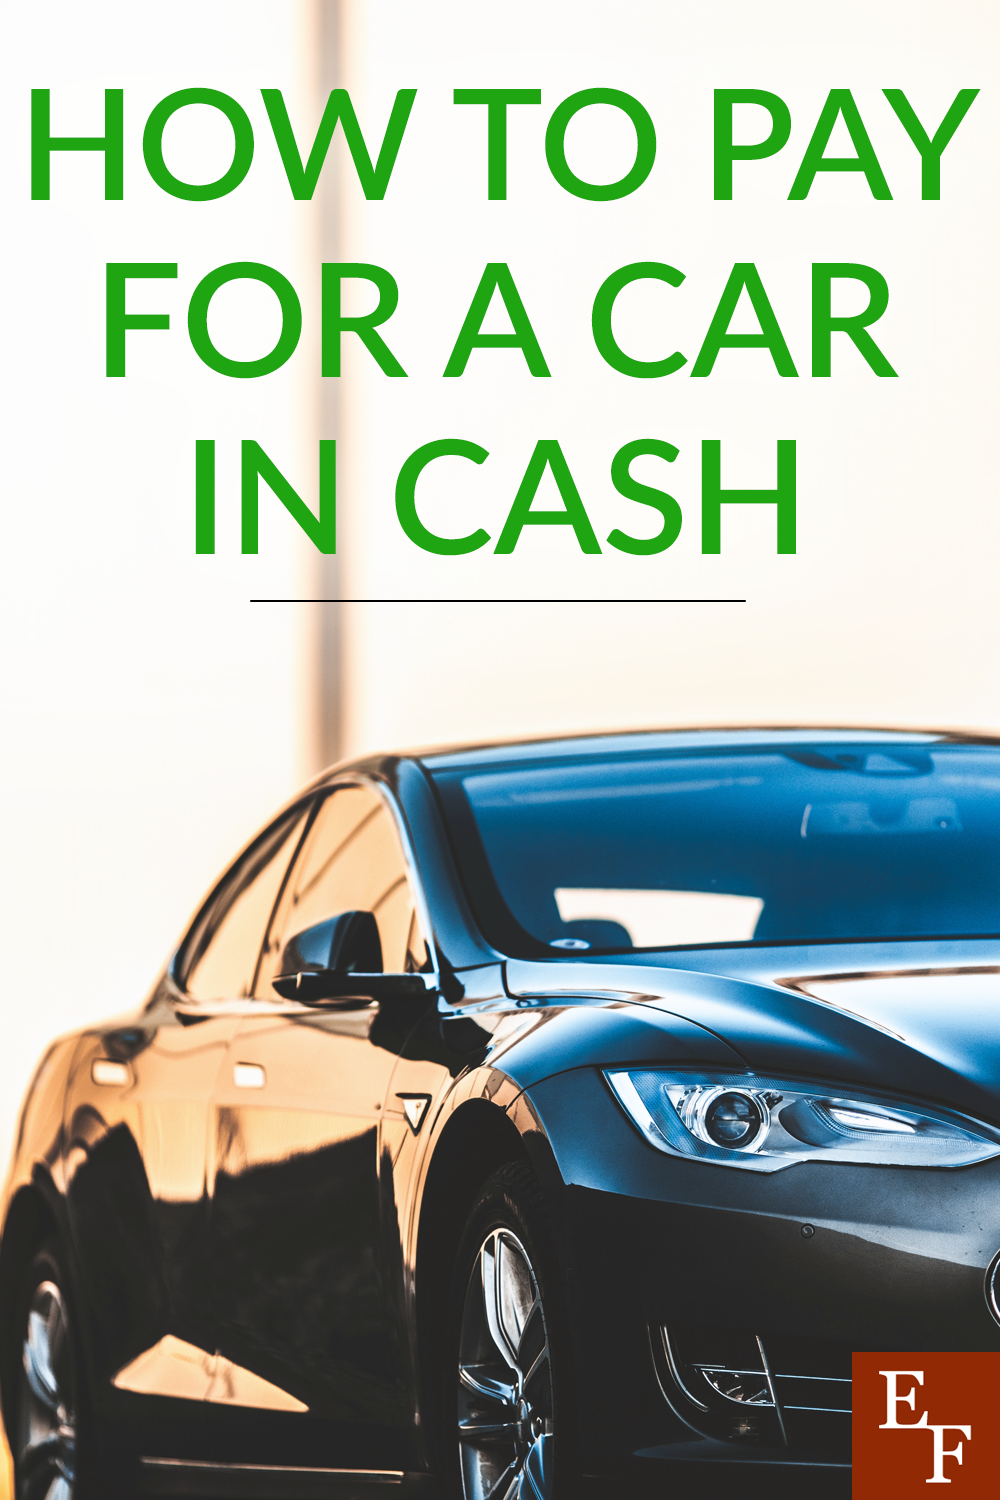 Besides housing and food, car payments can equal a large portion of our budget. So, how can you pay for a car in cash instead?